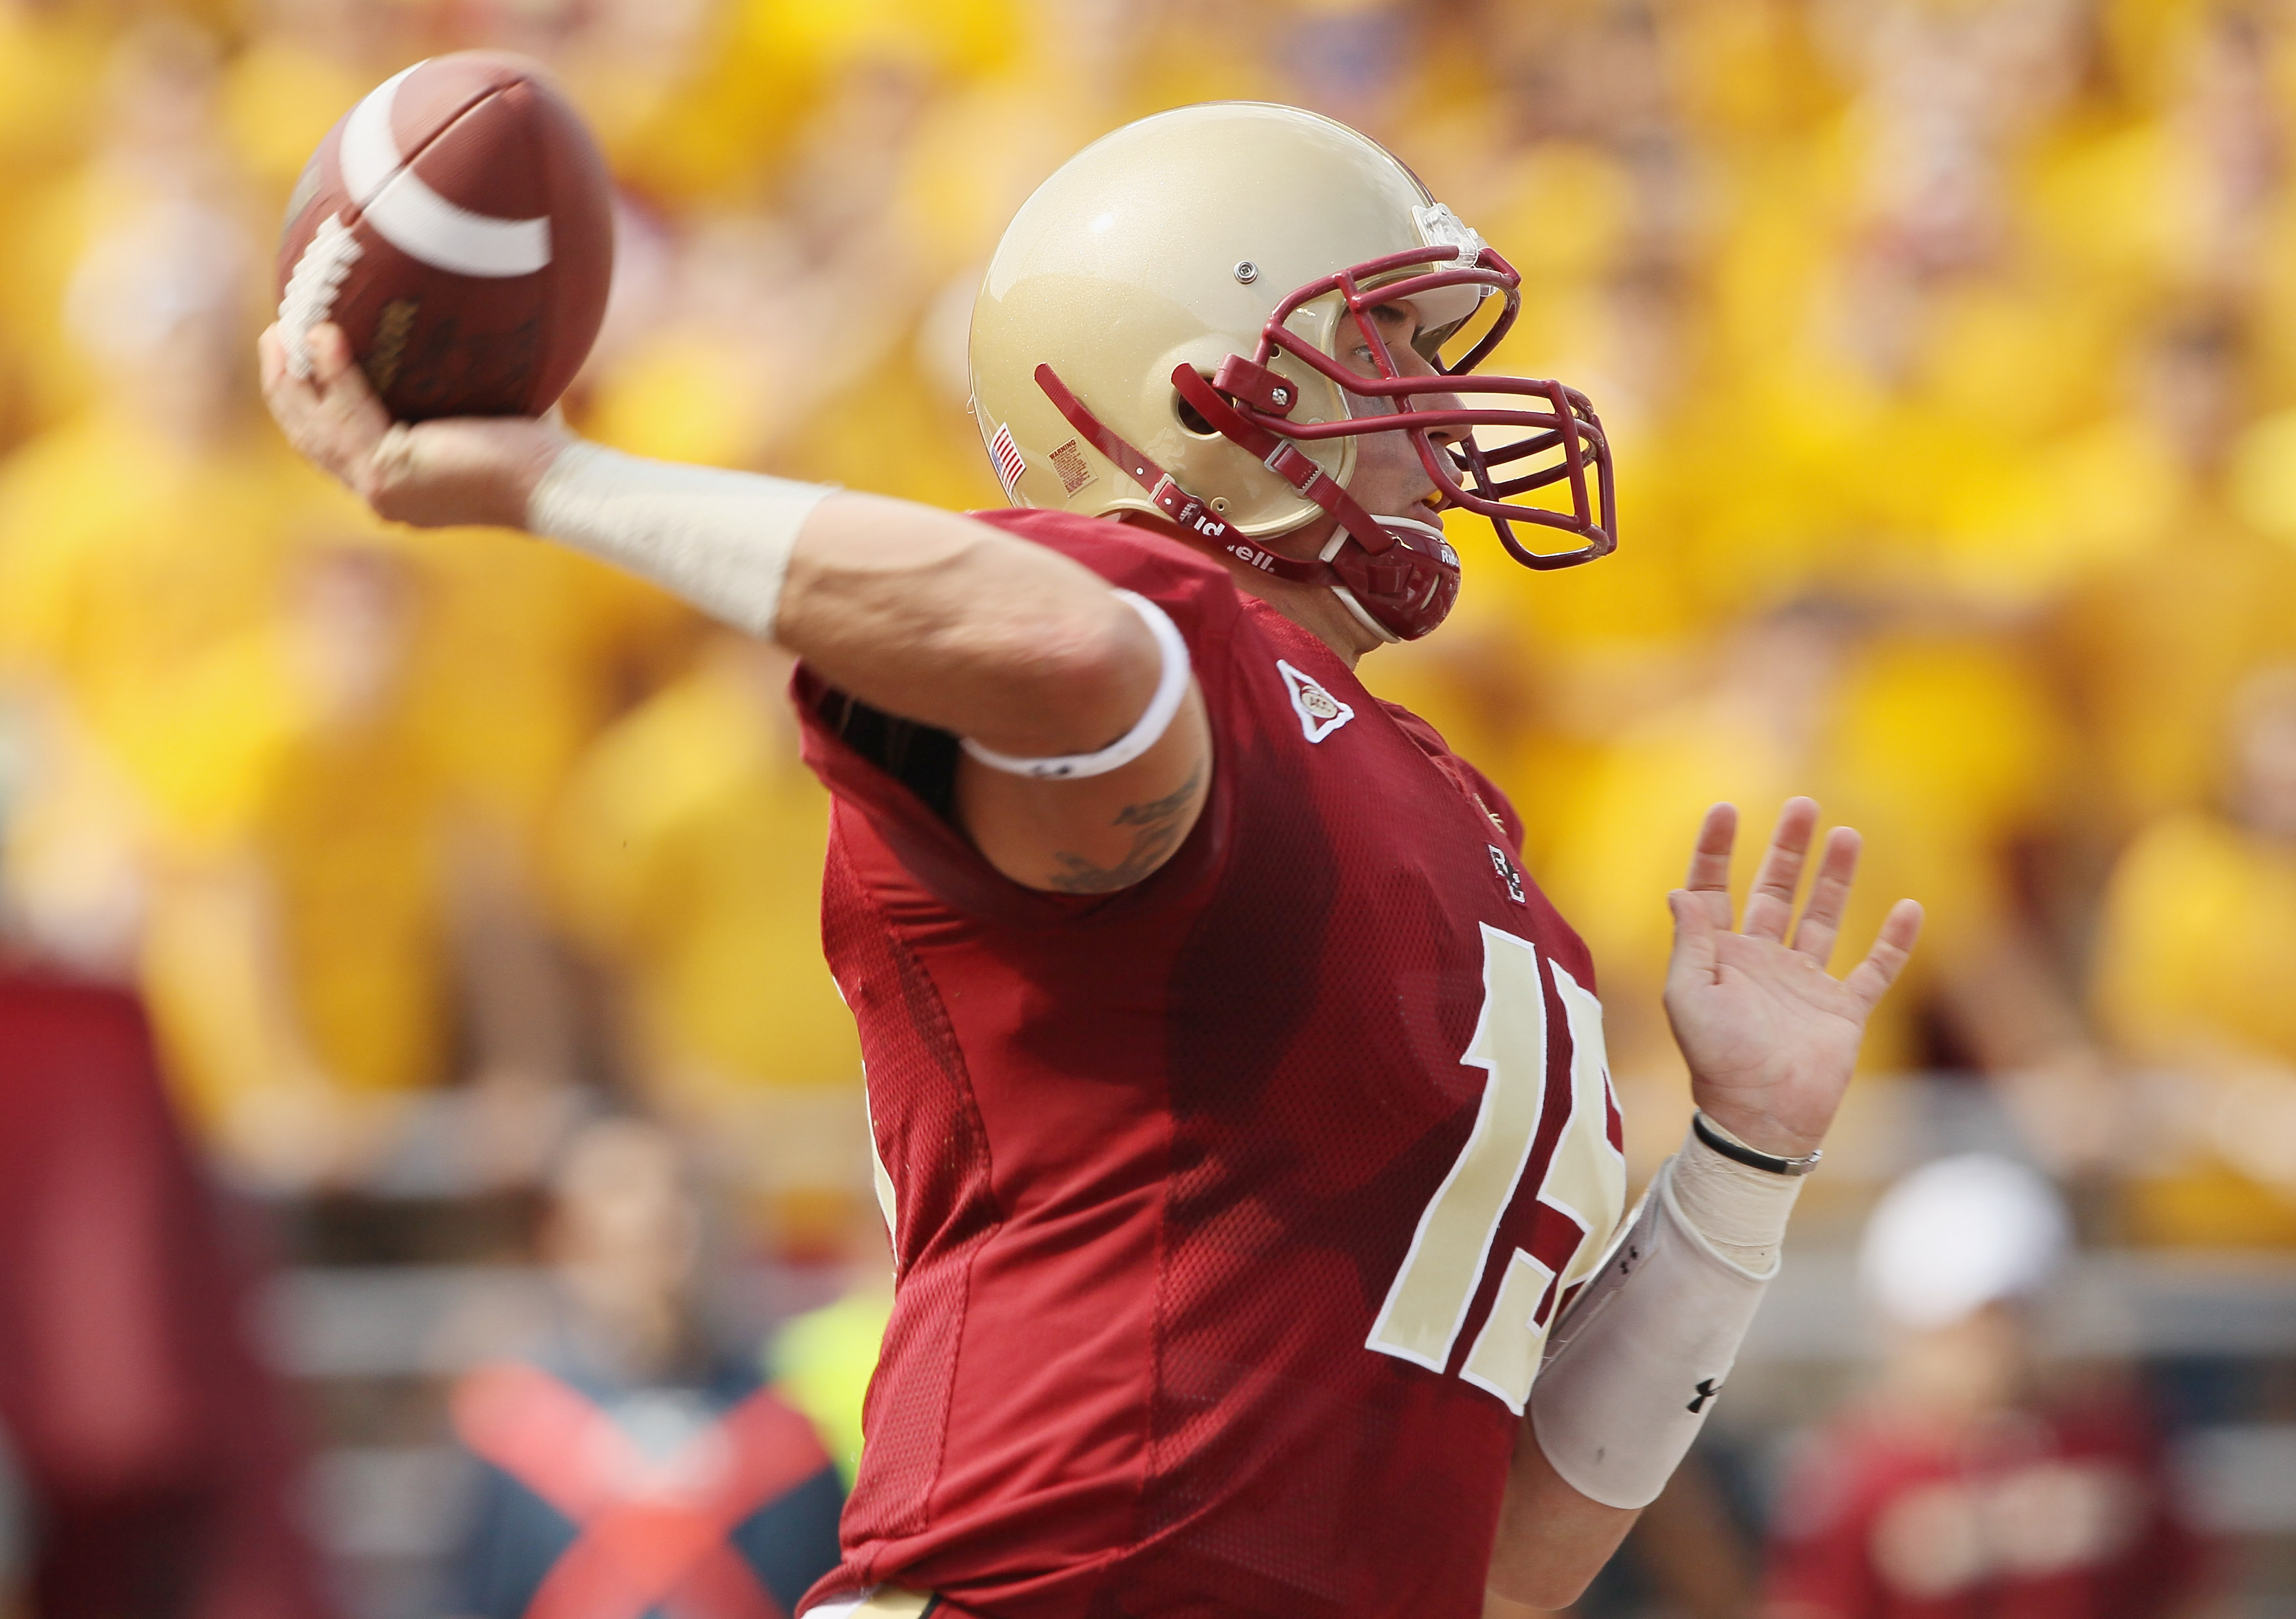 CHESTNUT HILL, MA - SEPTEMBER 25:  Dave Shinskie #15 of the Boston College Eagles passes the ball in the second quarter against the Virginia Tech Hokies on September 25, 2010 at Alumni Stadium in Chestnut Hill, Massachusetts.  (Photo by Elsa/Getty Images)